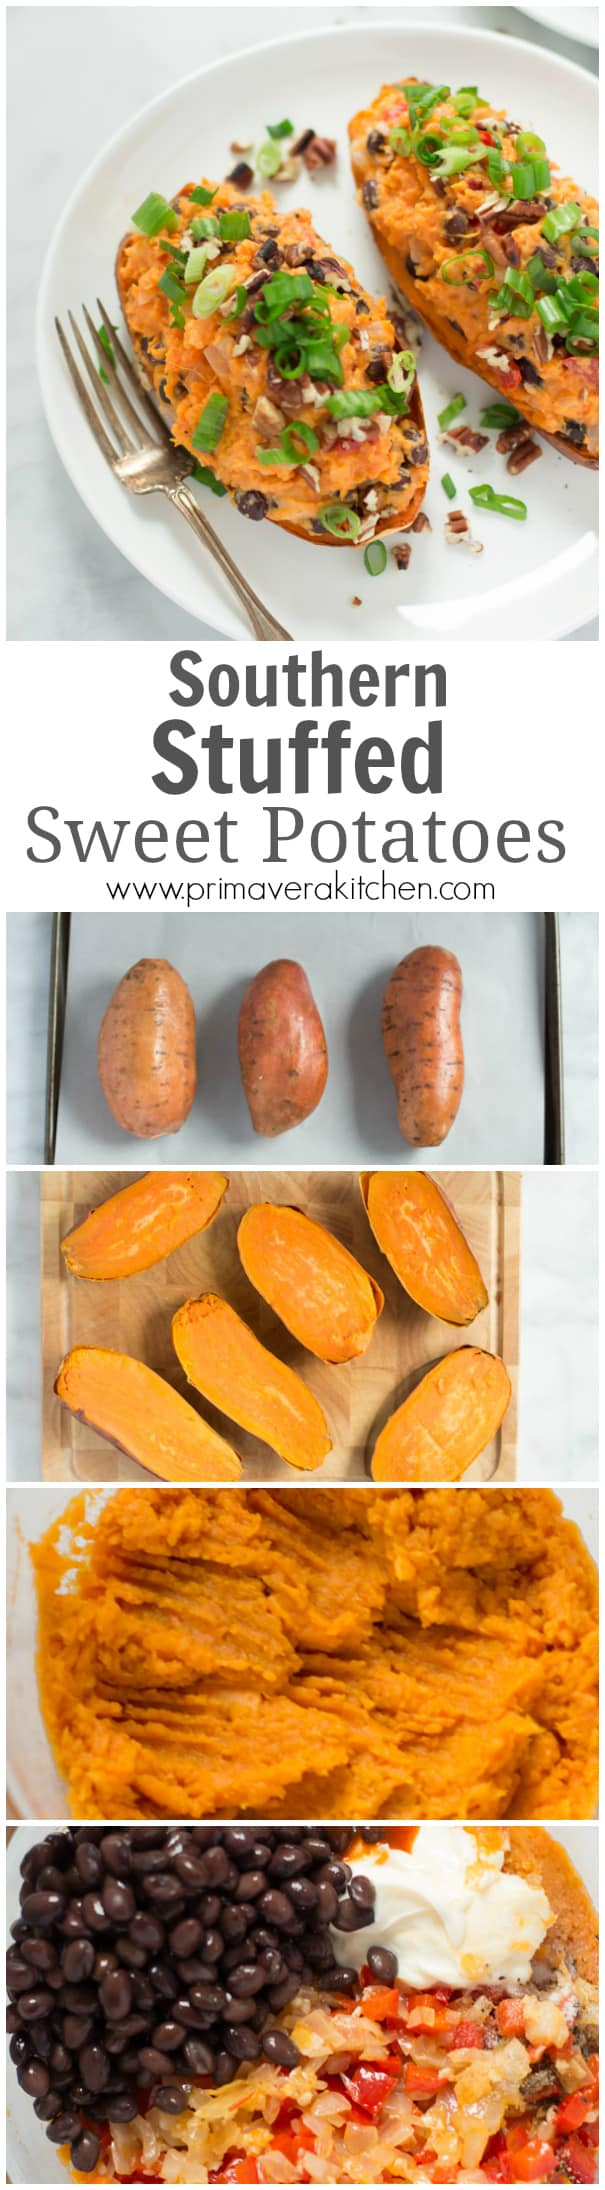 Southern Stuffed Sweet Potatoes - These Southern Stuffed Sweet Potatoes are loaded with onions, red pepper, black beans, hot sauce and garlic. This is a delicious gluten-free and vegetarian dish that is perfect for lunch or a light dinner.